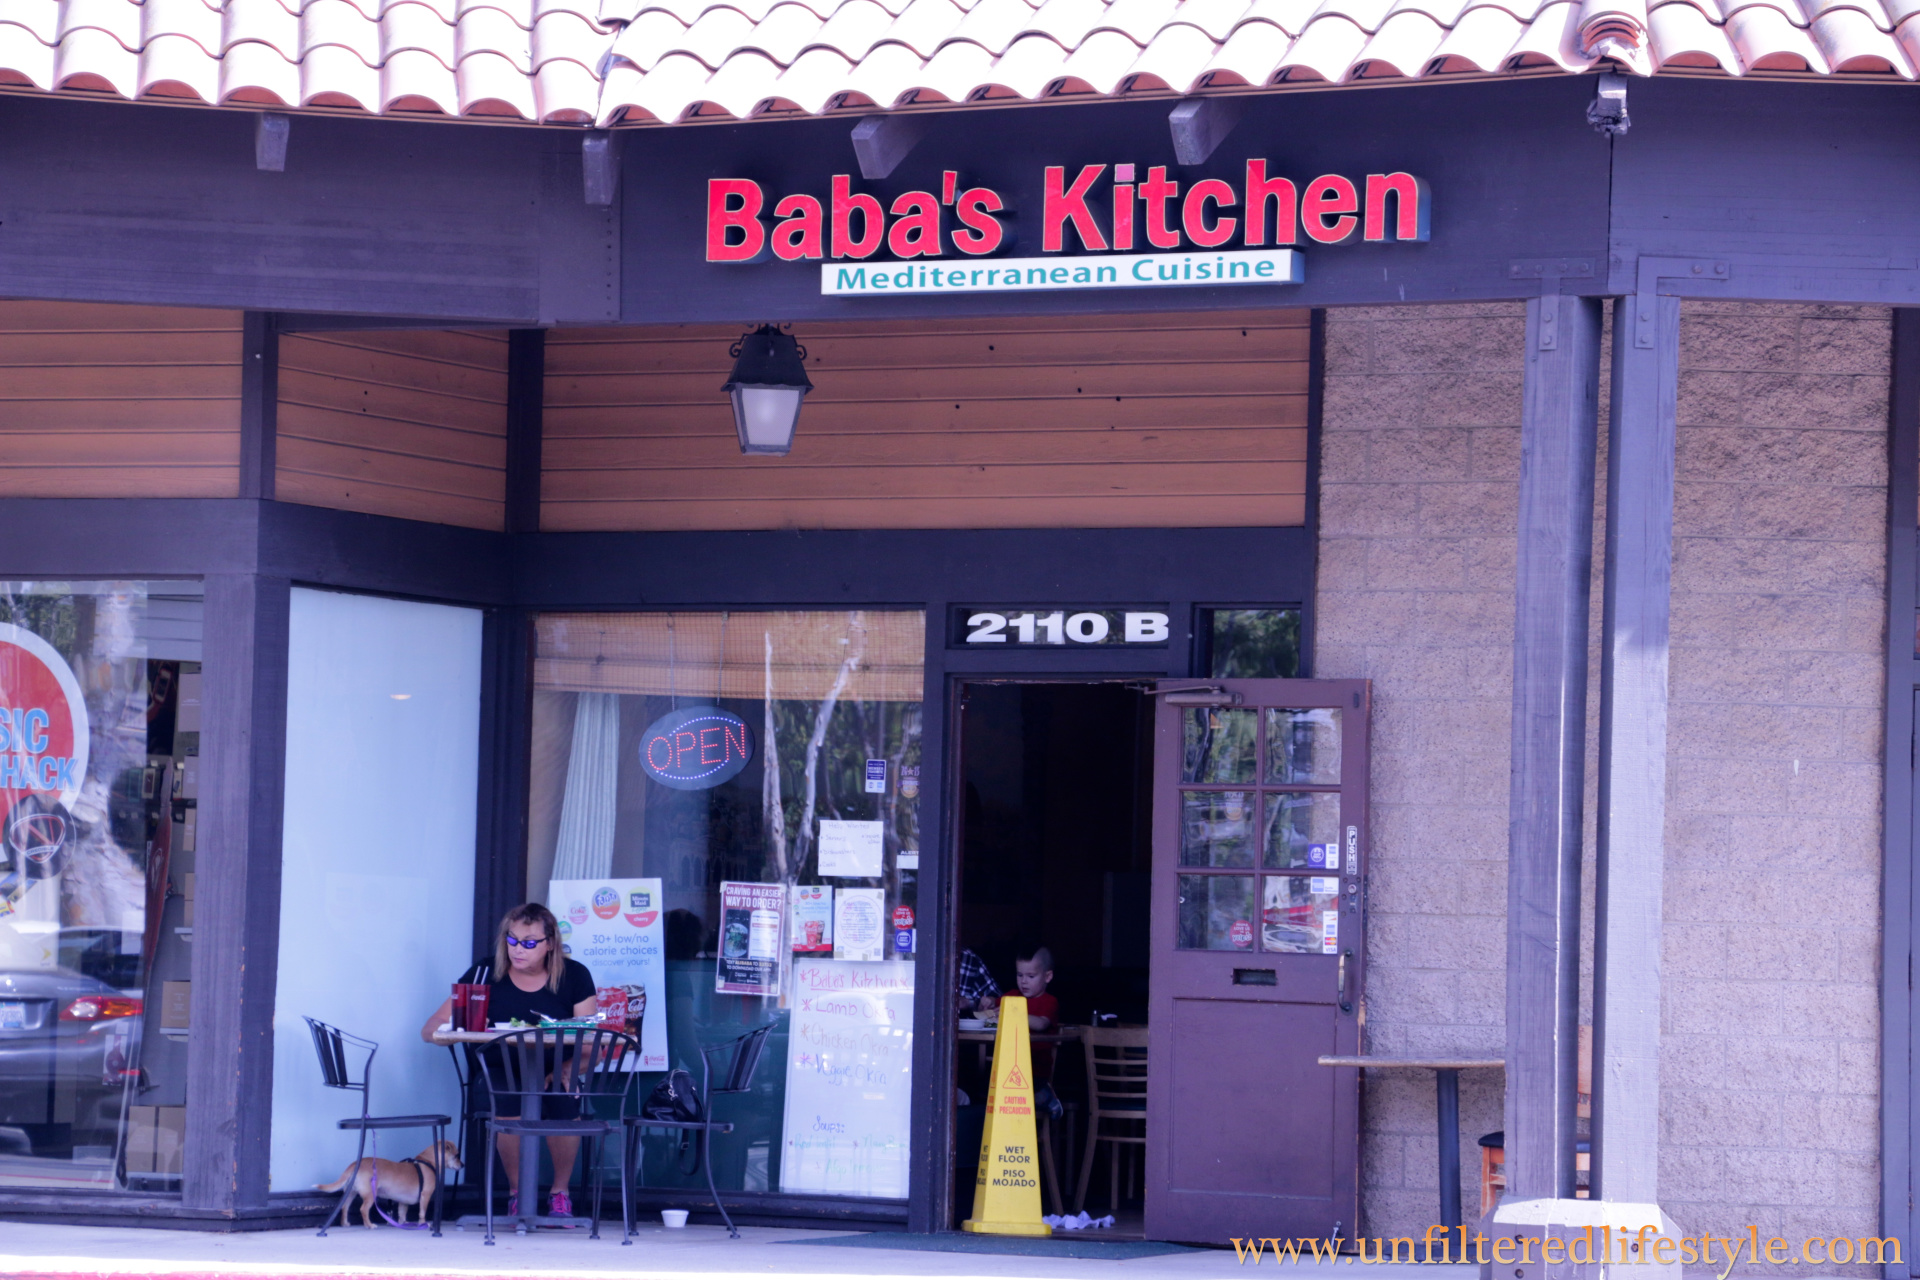 Baba's Kitchen: The King of Falafel